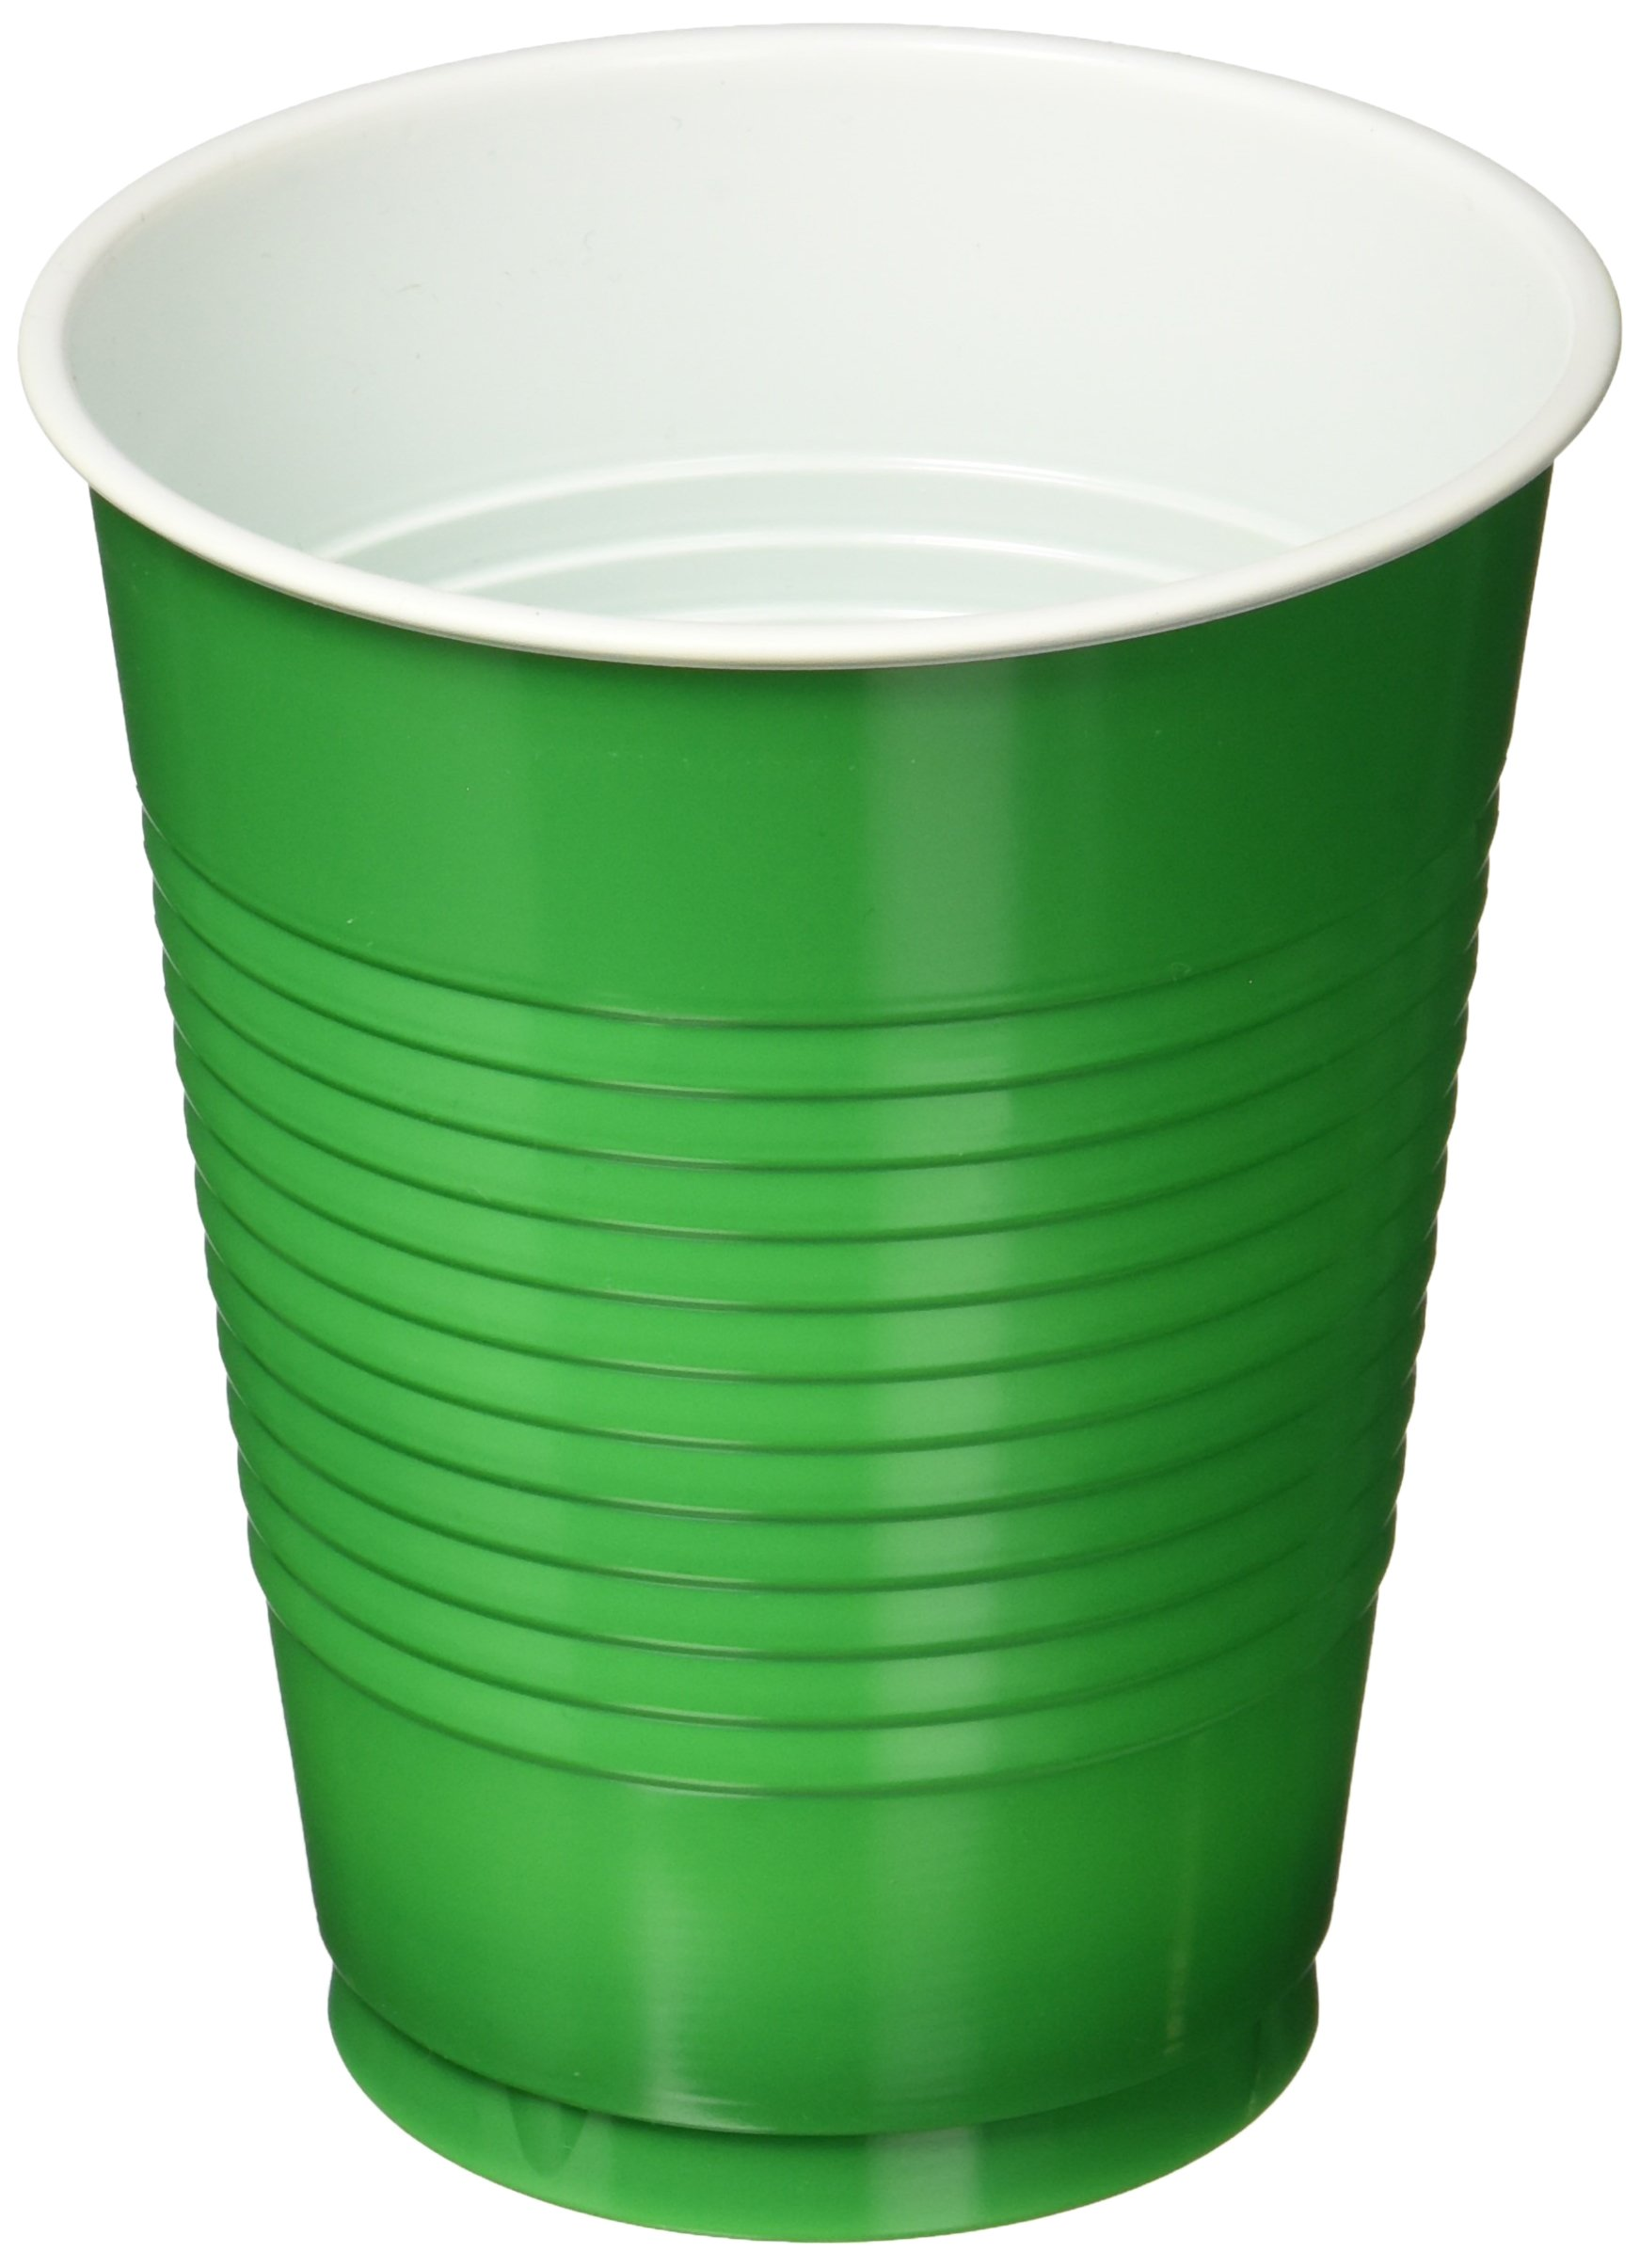 Amscan Awesome Festive Green Big Party Pack Plastic Cups 16 oz, 50 Pieces